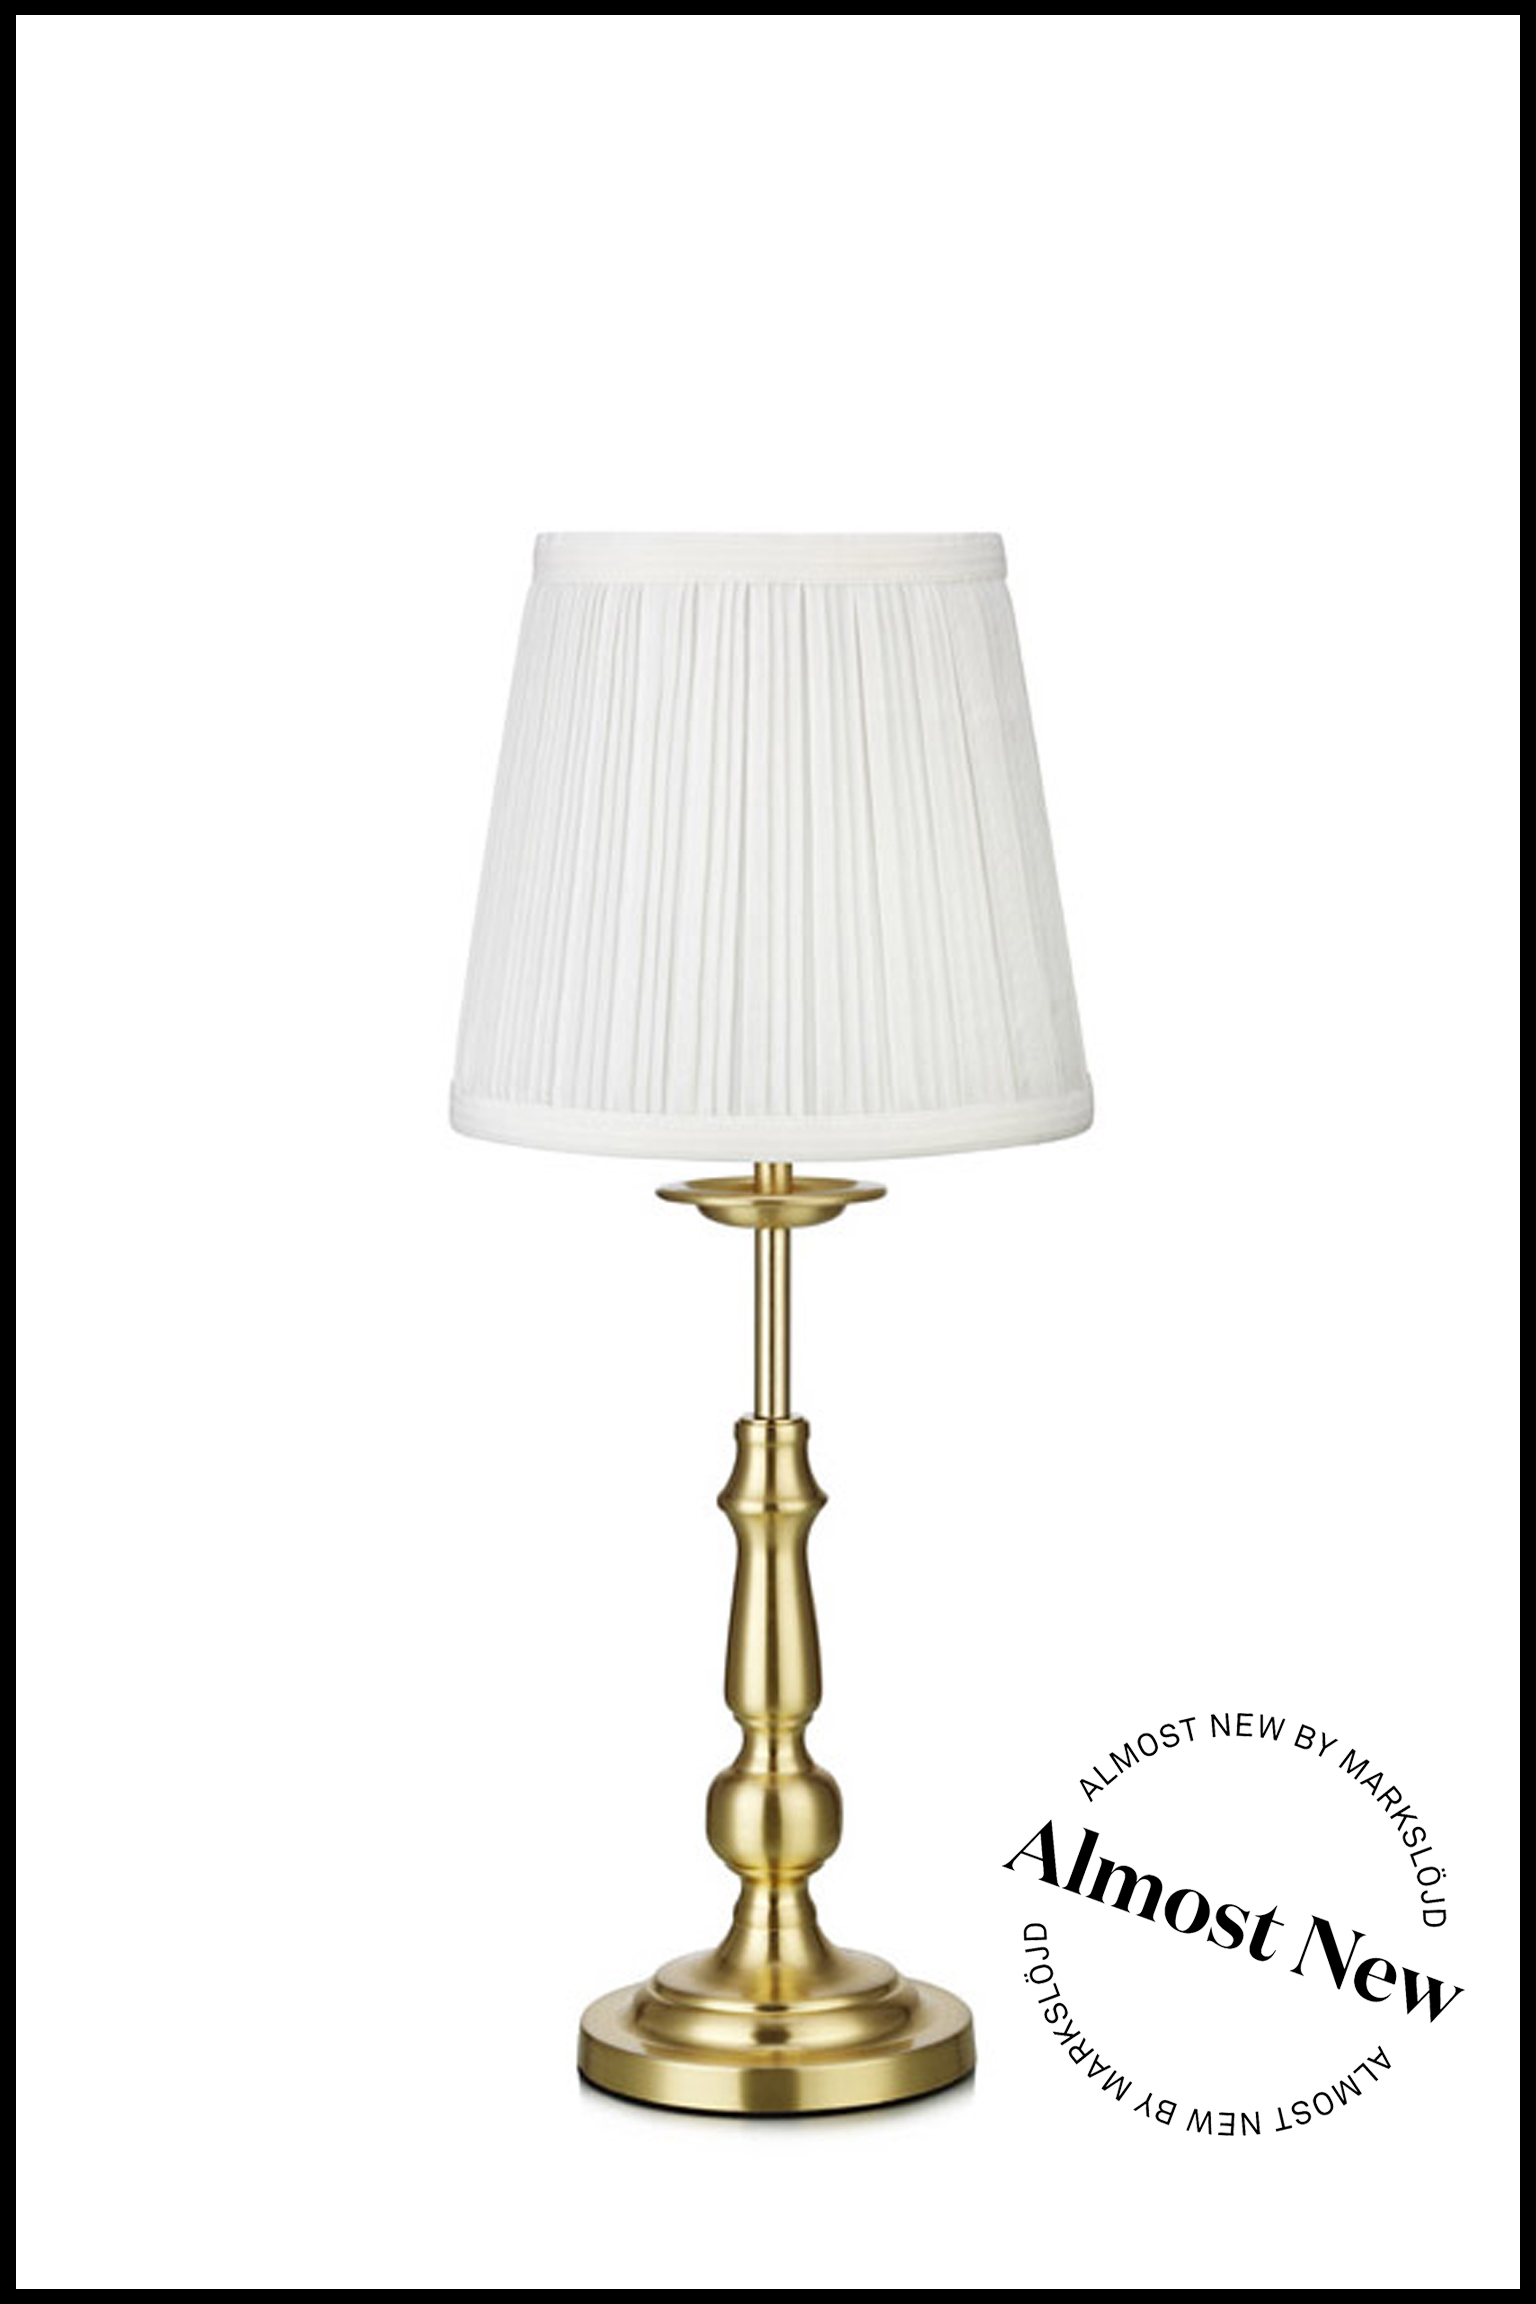 ALMOST NEW IMPERIA TABLE BRASS/WHITE